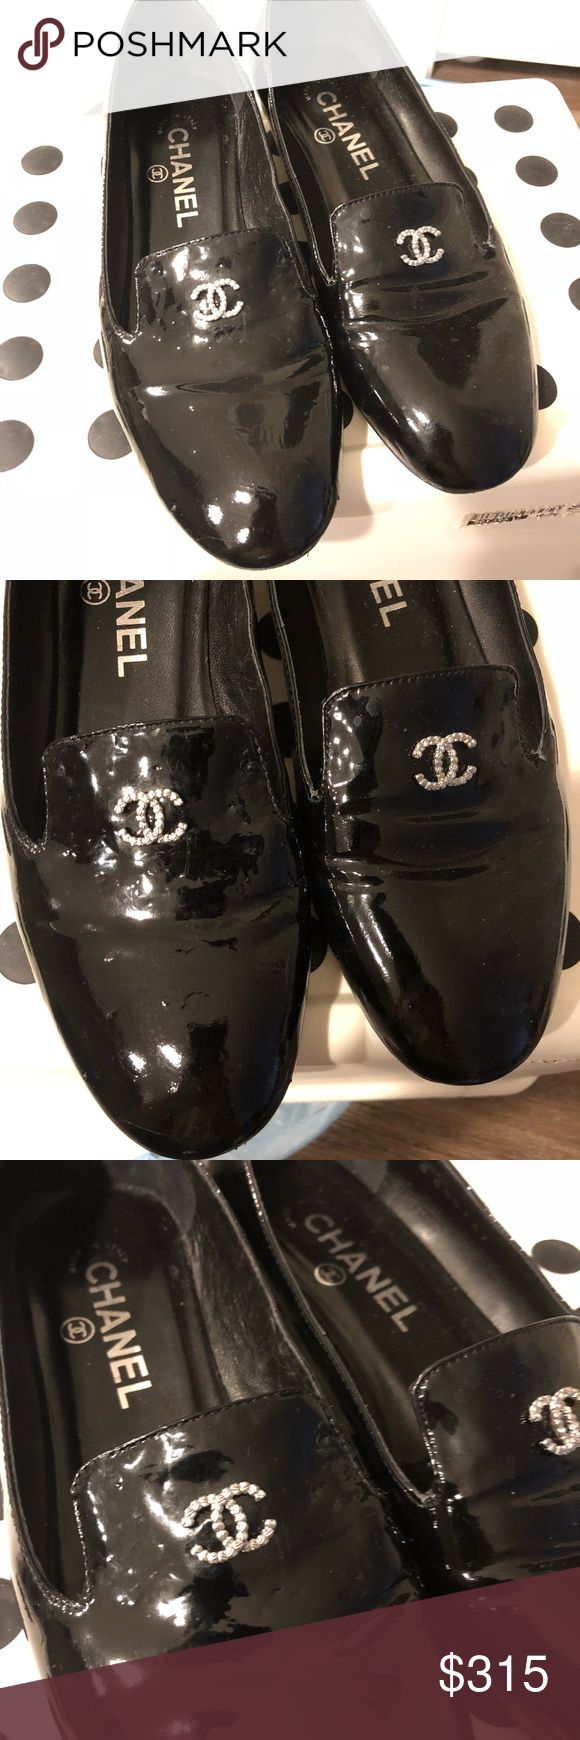 💥LAST PRICE💥Chanel loafers with pearls on heels 0.5 inch. The right one was bit by my puppy minor signs. Not noticeable in person. Welcome to bring them home CHANEL Shoes Flats & Loafers